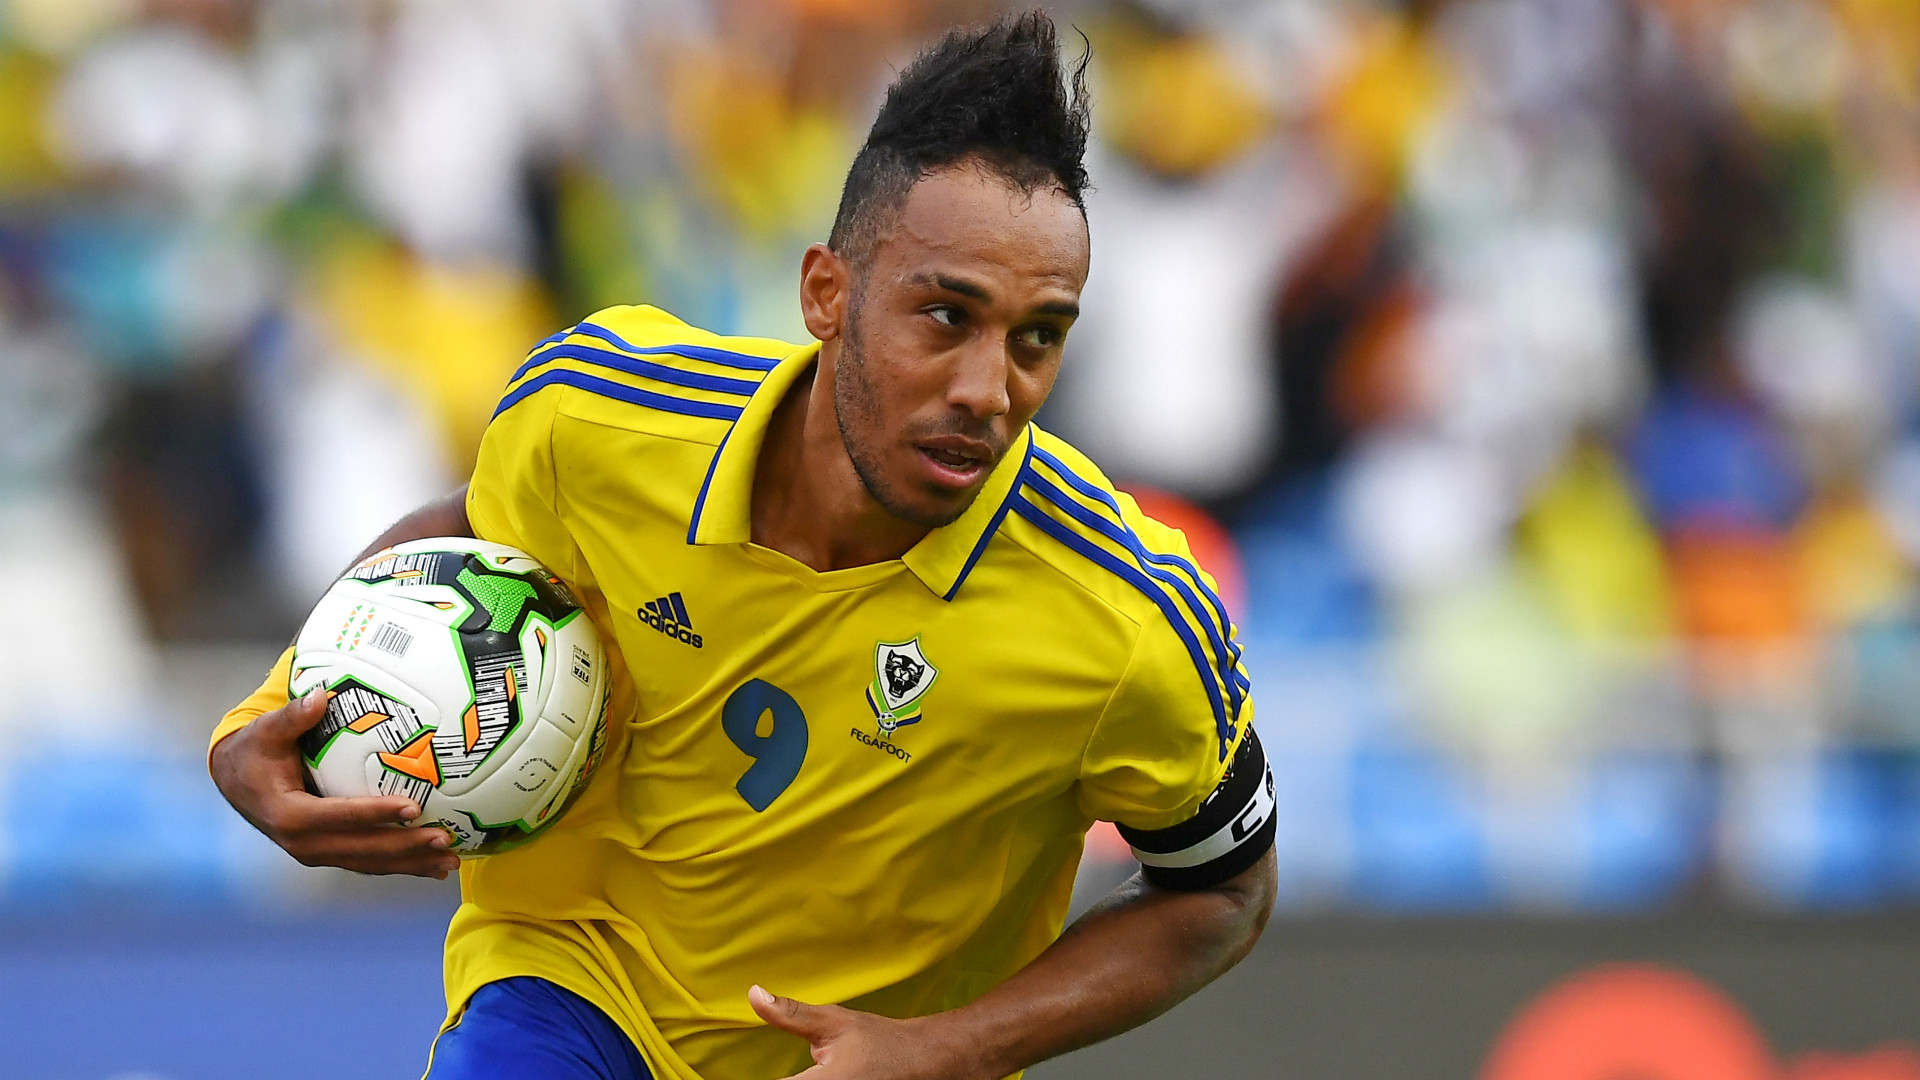 2022 World Cup qualifiers: Aubameyang on target as Gabon grab first win while Cameroon eliminate Mozambique